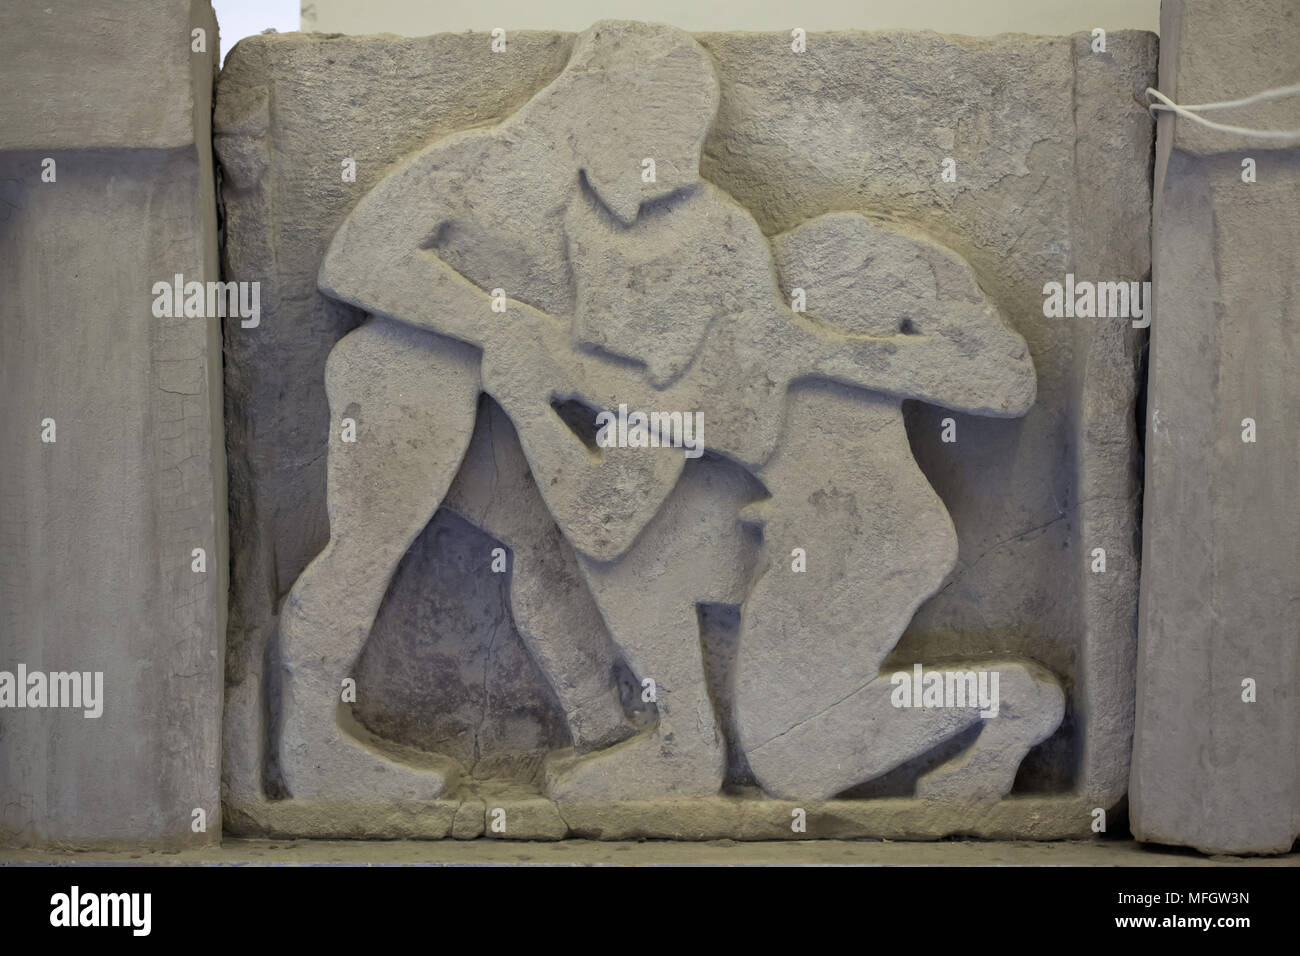 Heracles fighting Antaeus. Archaic sandstone metope from the Heraion (First Temple of Hera) at Foce del Sele dated from the middle of the 6th century BC on display in the Paestum Archaeological Museum (Museo archeologico di Paestum) in Paestum, Campania, Italy. - Stock Image